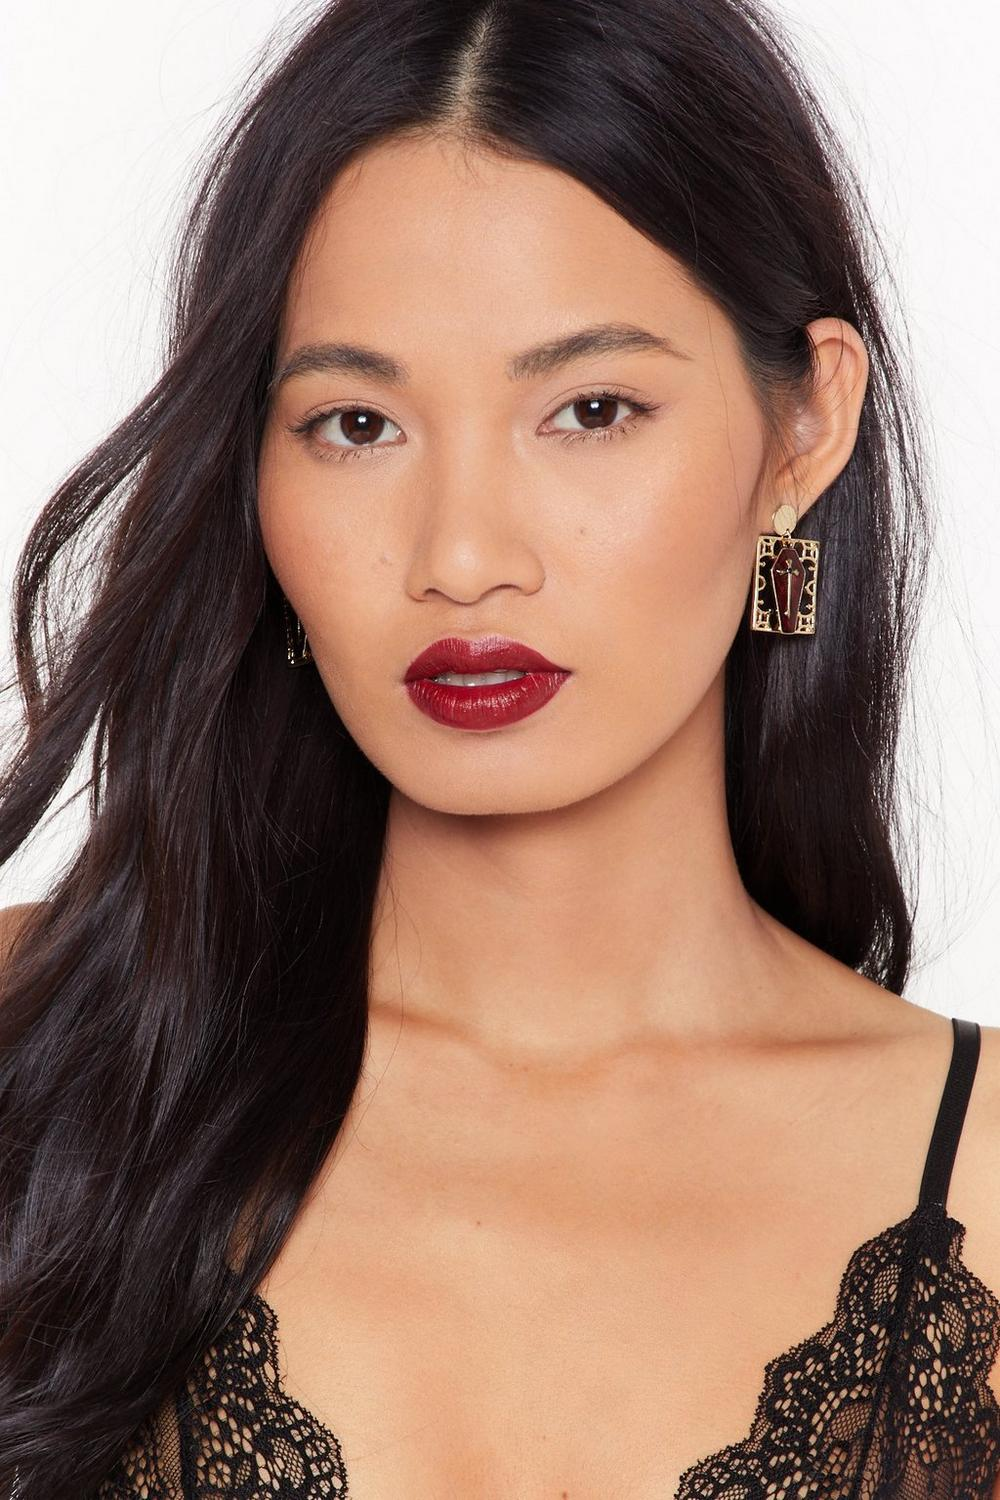 The Final Nail In The Coffin Drop Earrings by Nasty Gal